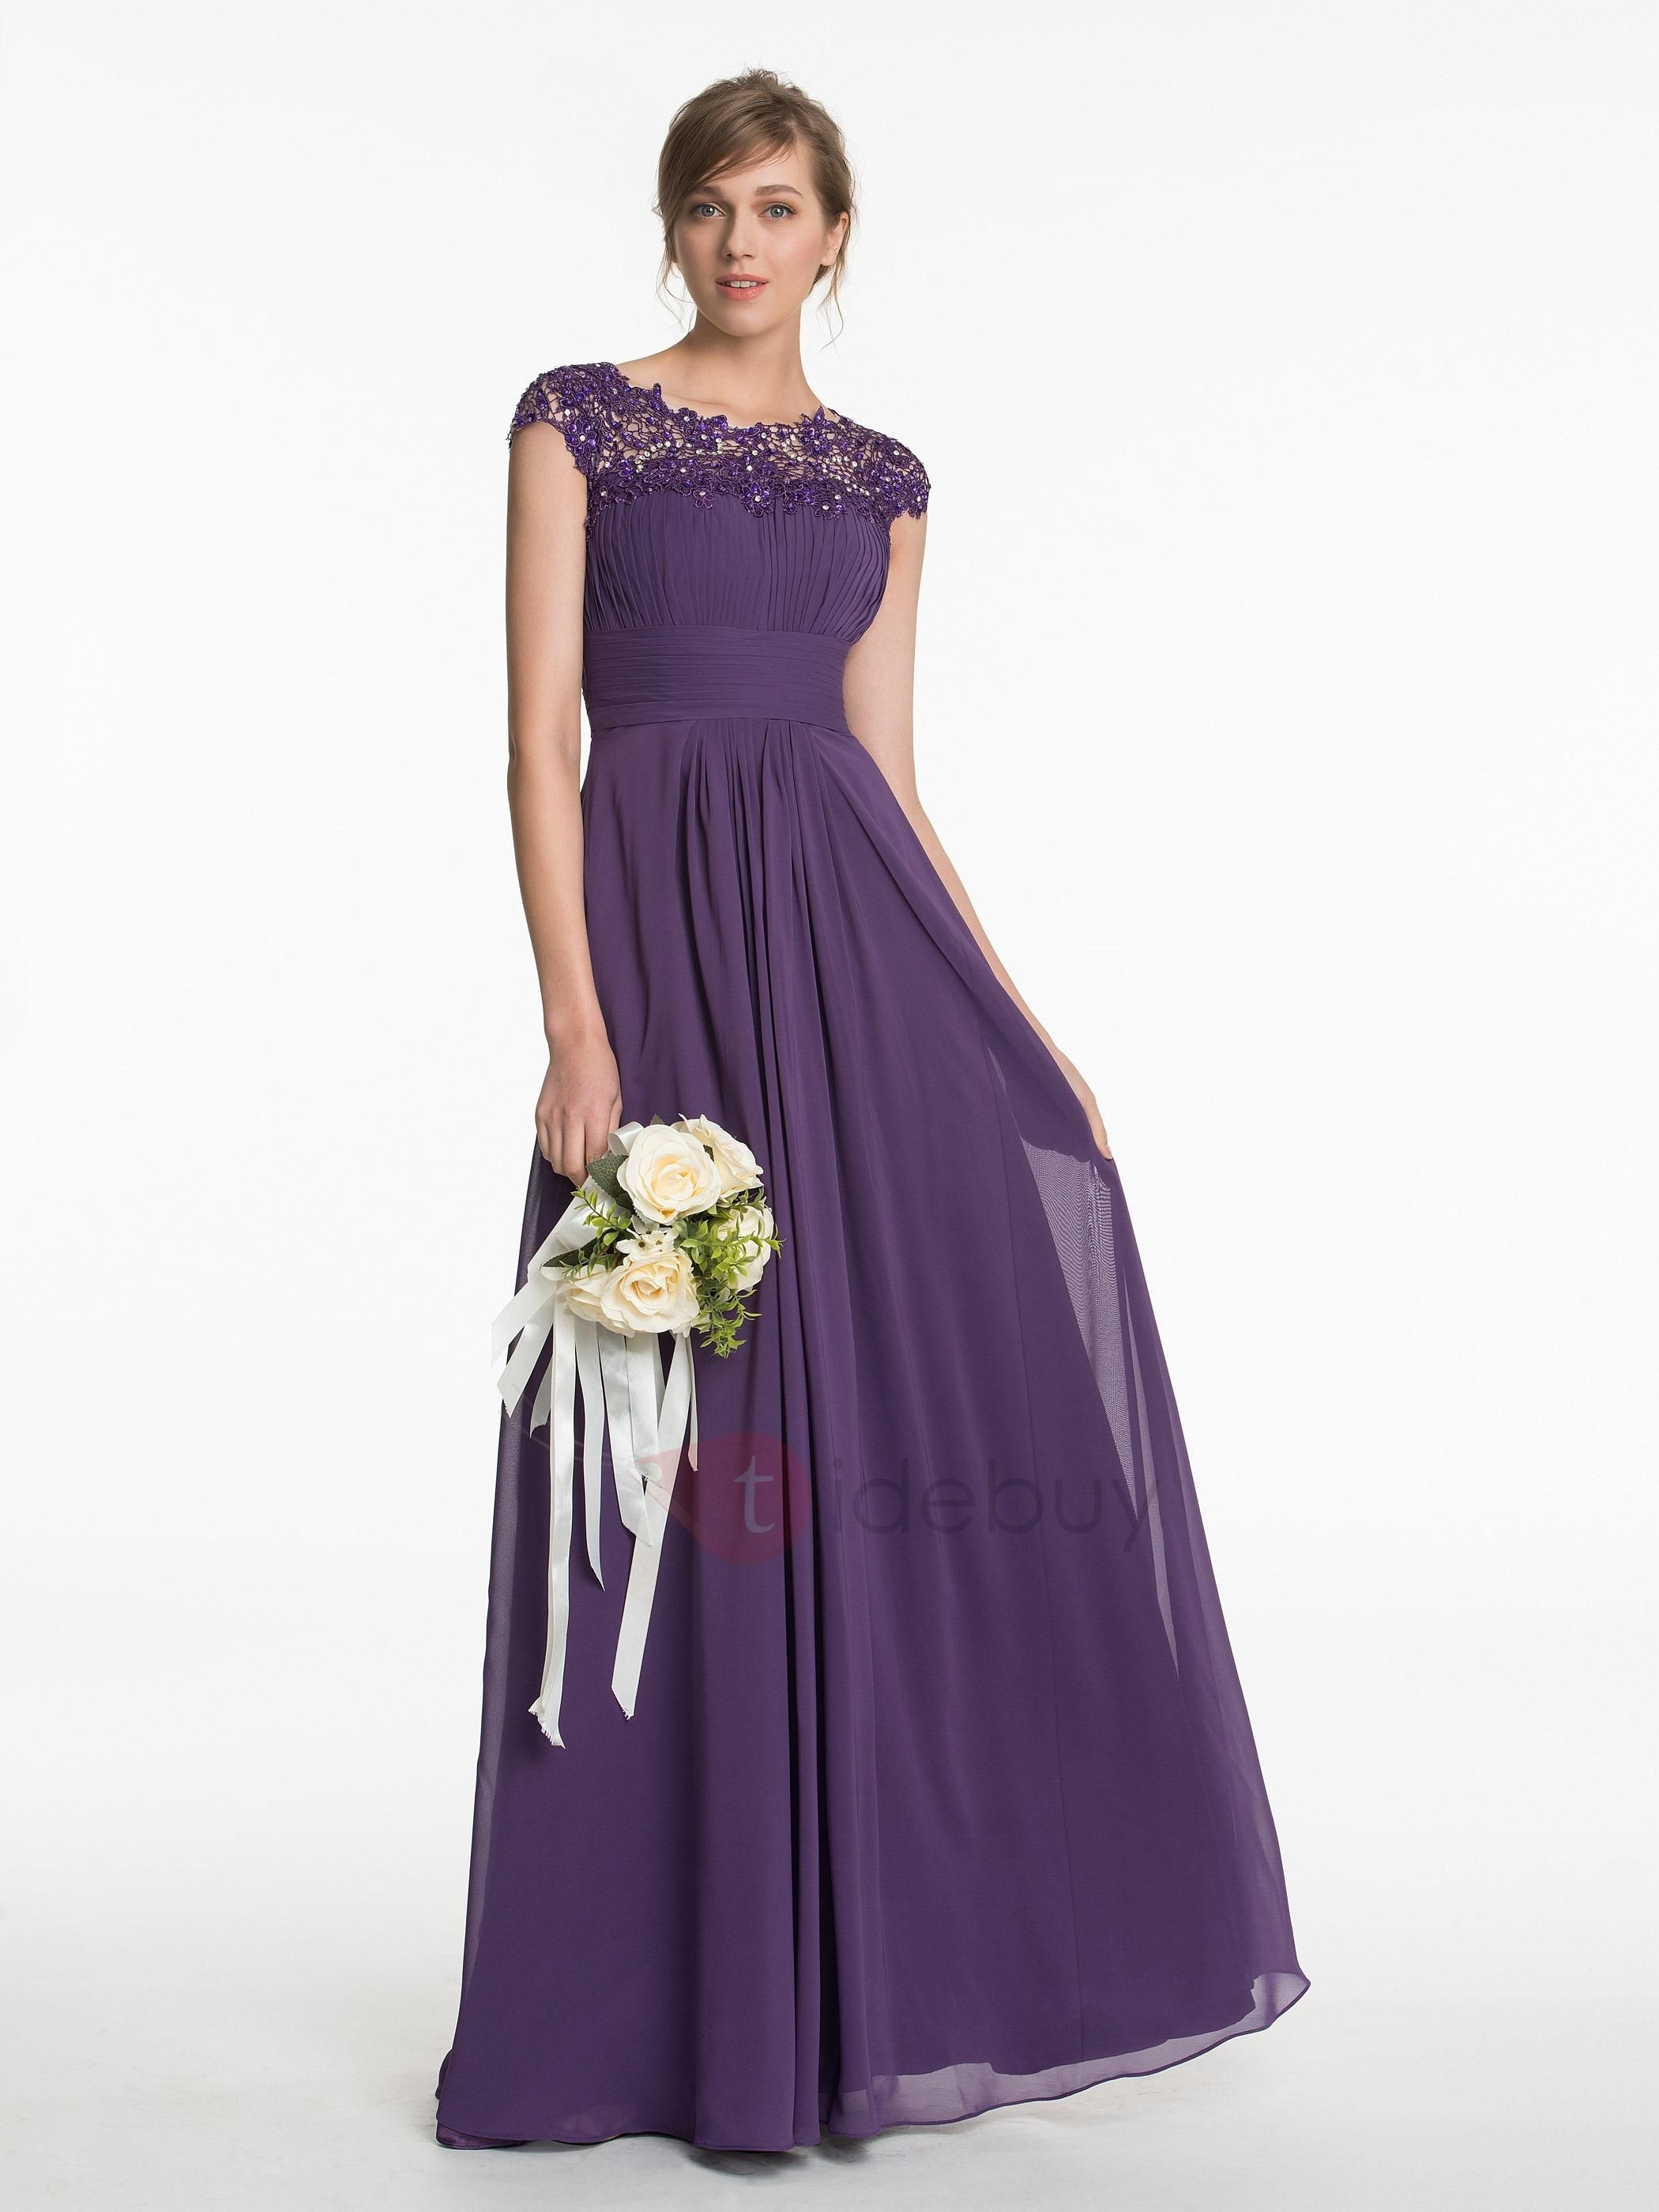 Tidebuy tidebuy fancy cap sleeves long bridesmaid dress with tidebuy tidebuy fancy cap sleeves long bridesmaid dress with beaded appliques adorewe ombrellifo Image collections